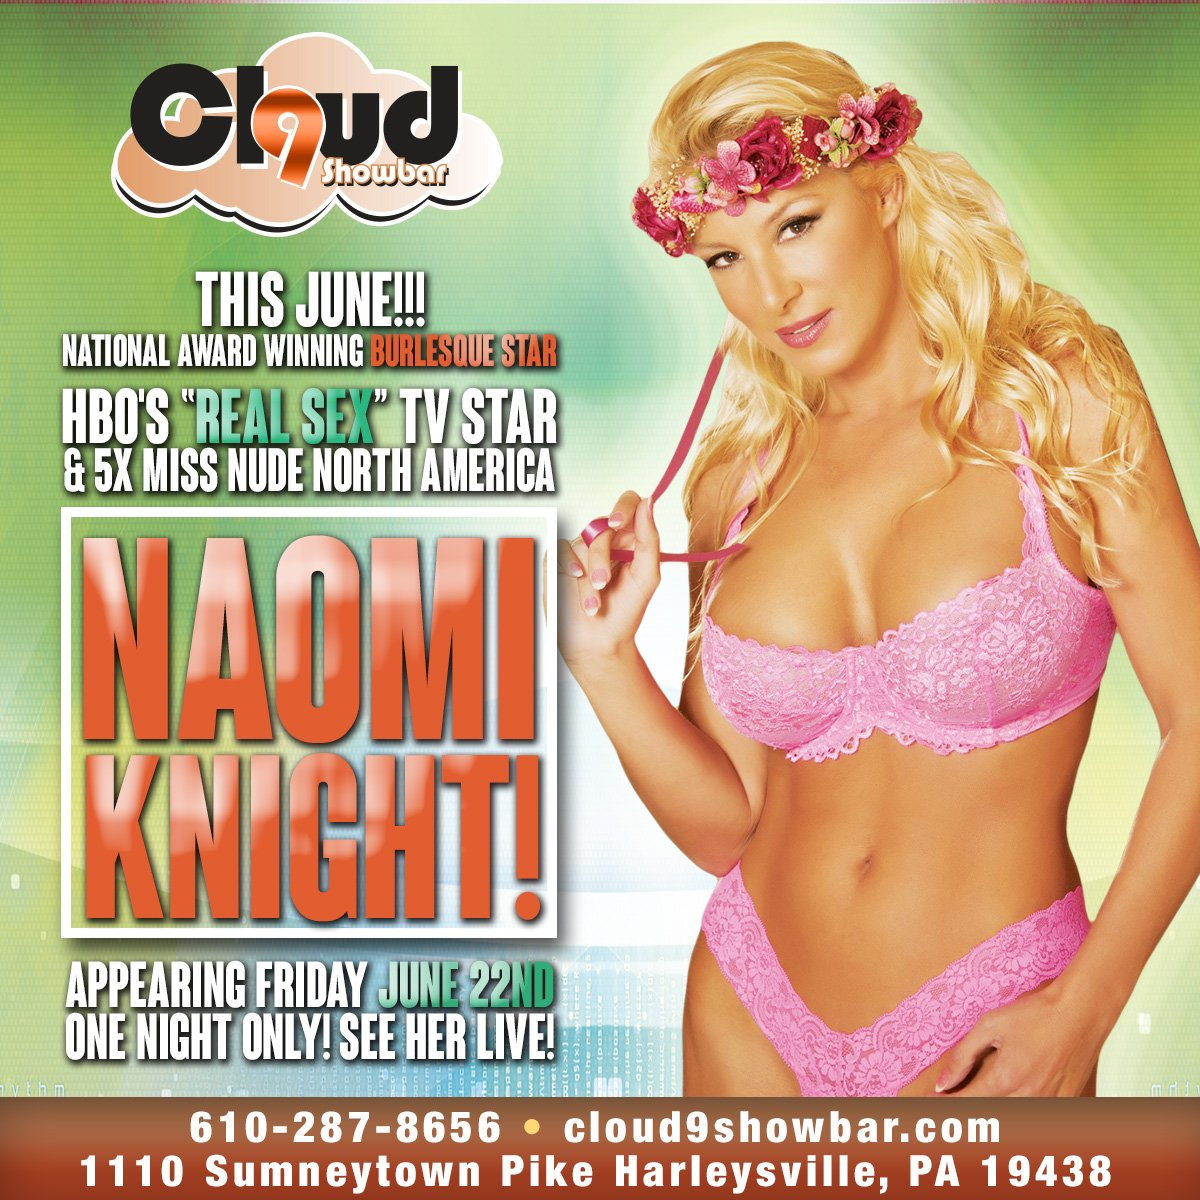 One night only!!! Start your weekend of with a bang💥 Come join me and the sexy women of Cloud nine show bar for a crazy and wild Friday night.  #naomiknightxxx #naomiknight #nightlife #blonde #featureentertainer #boobs #harleysvillepa